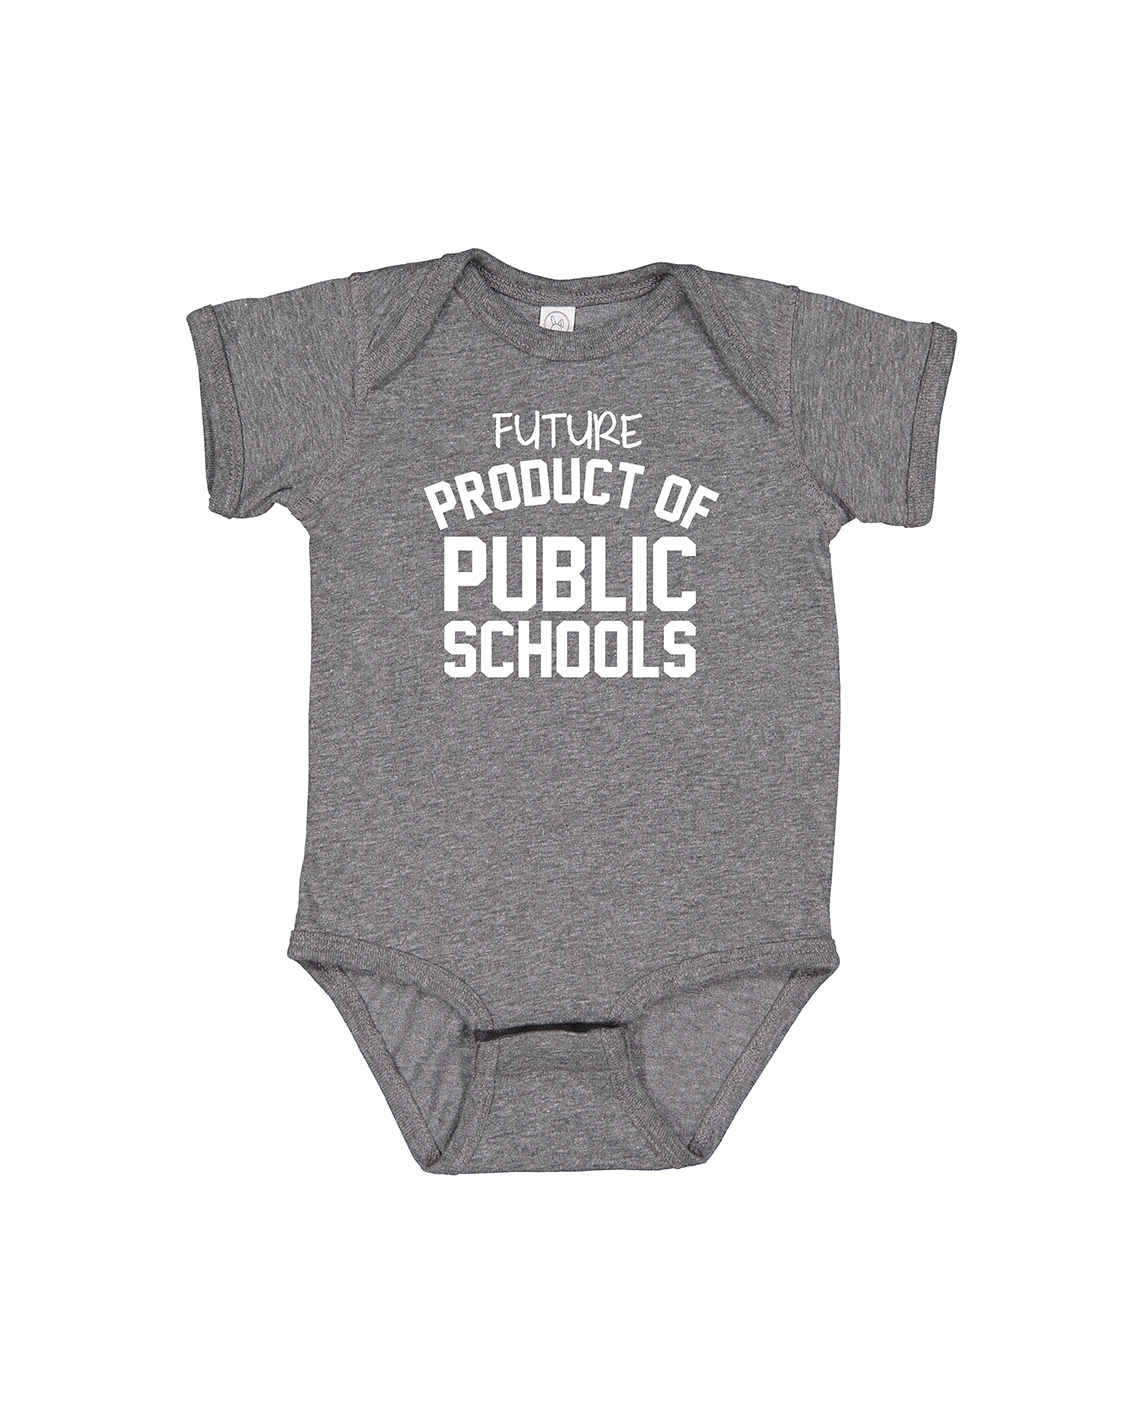 Future Product of Public Schools Short Sleeve Onesie - Grey - Originalitees